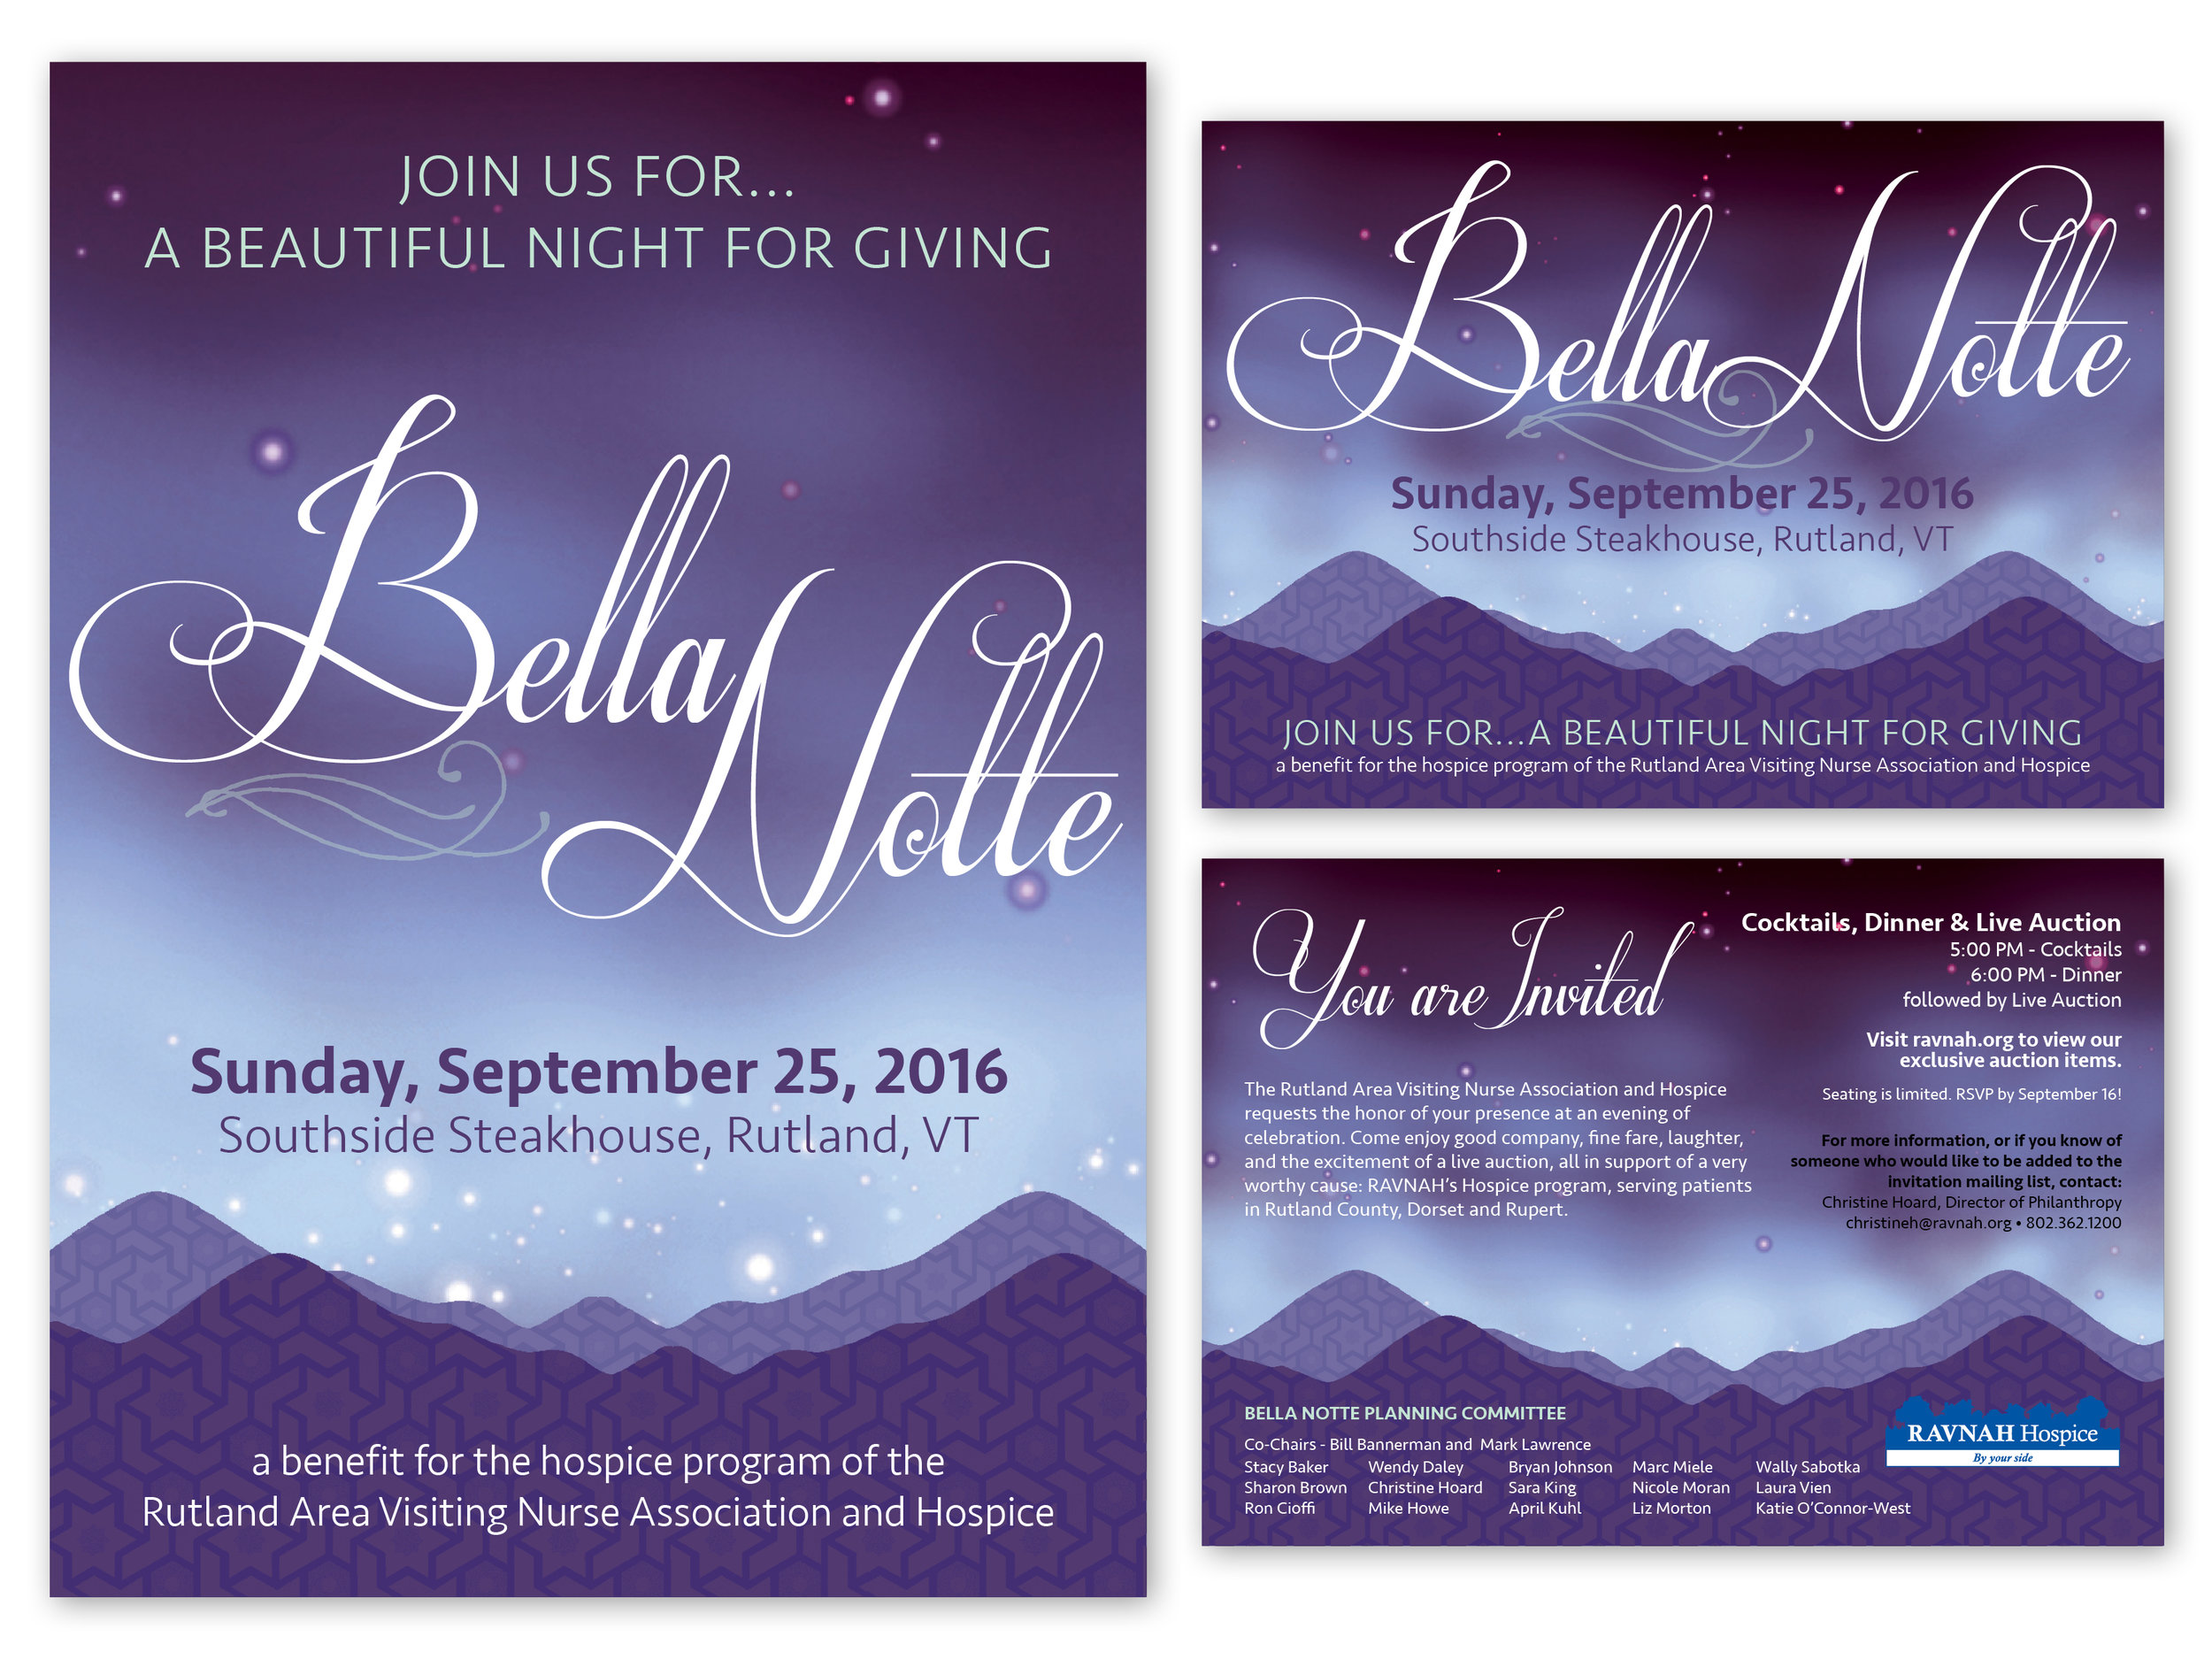 Fundraiser Event Invite & Save the Date